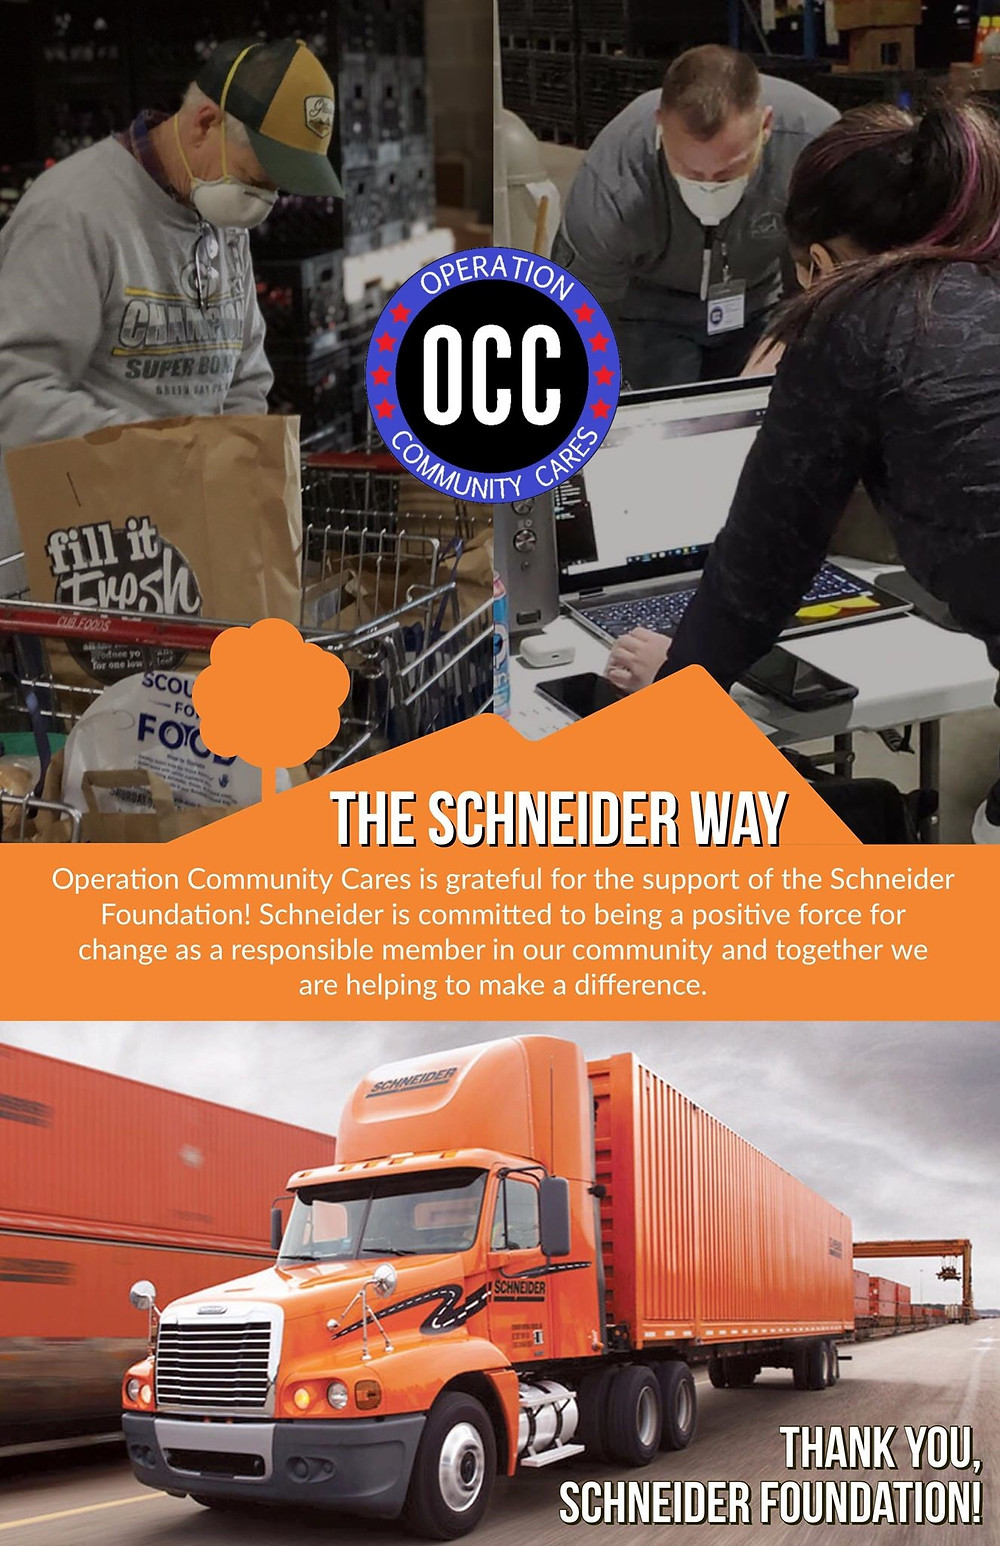 Thank you from OCC